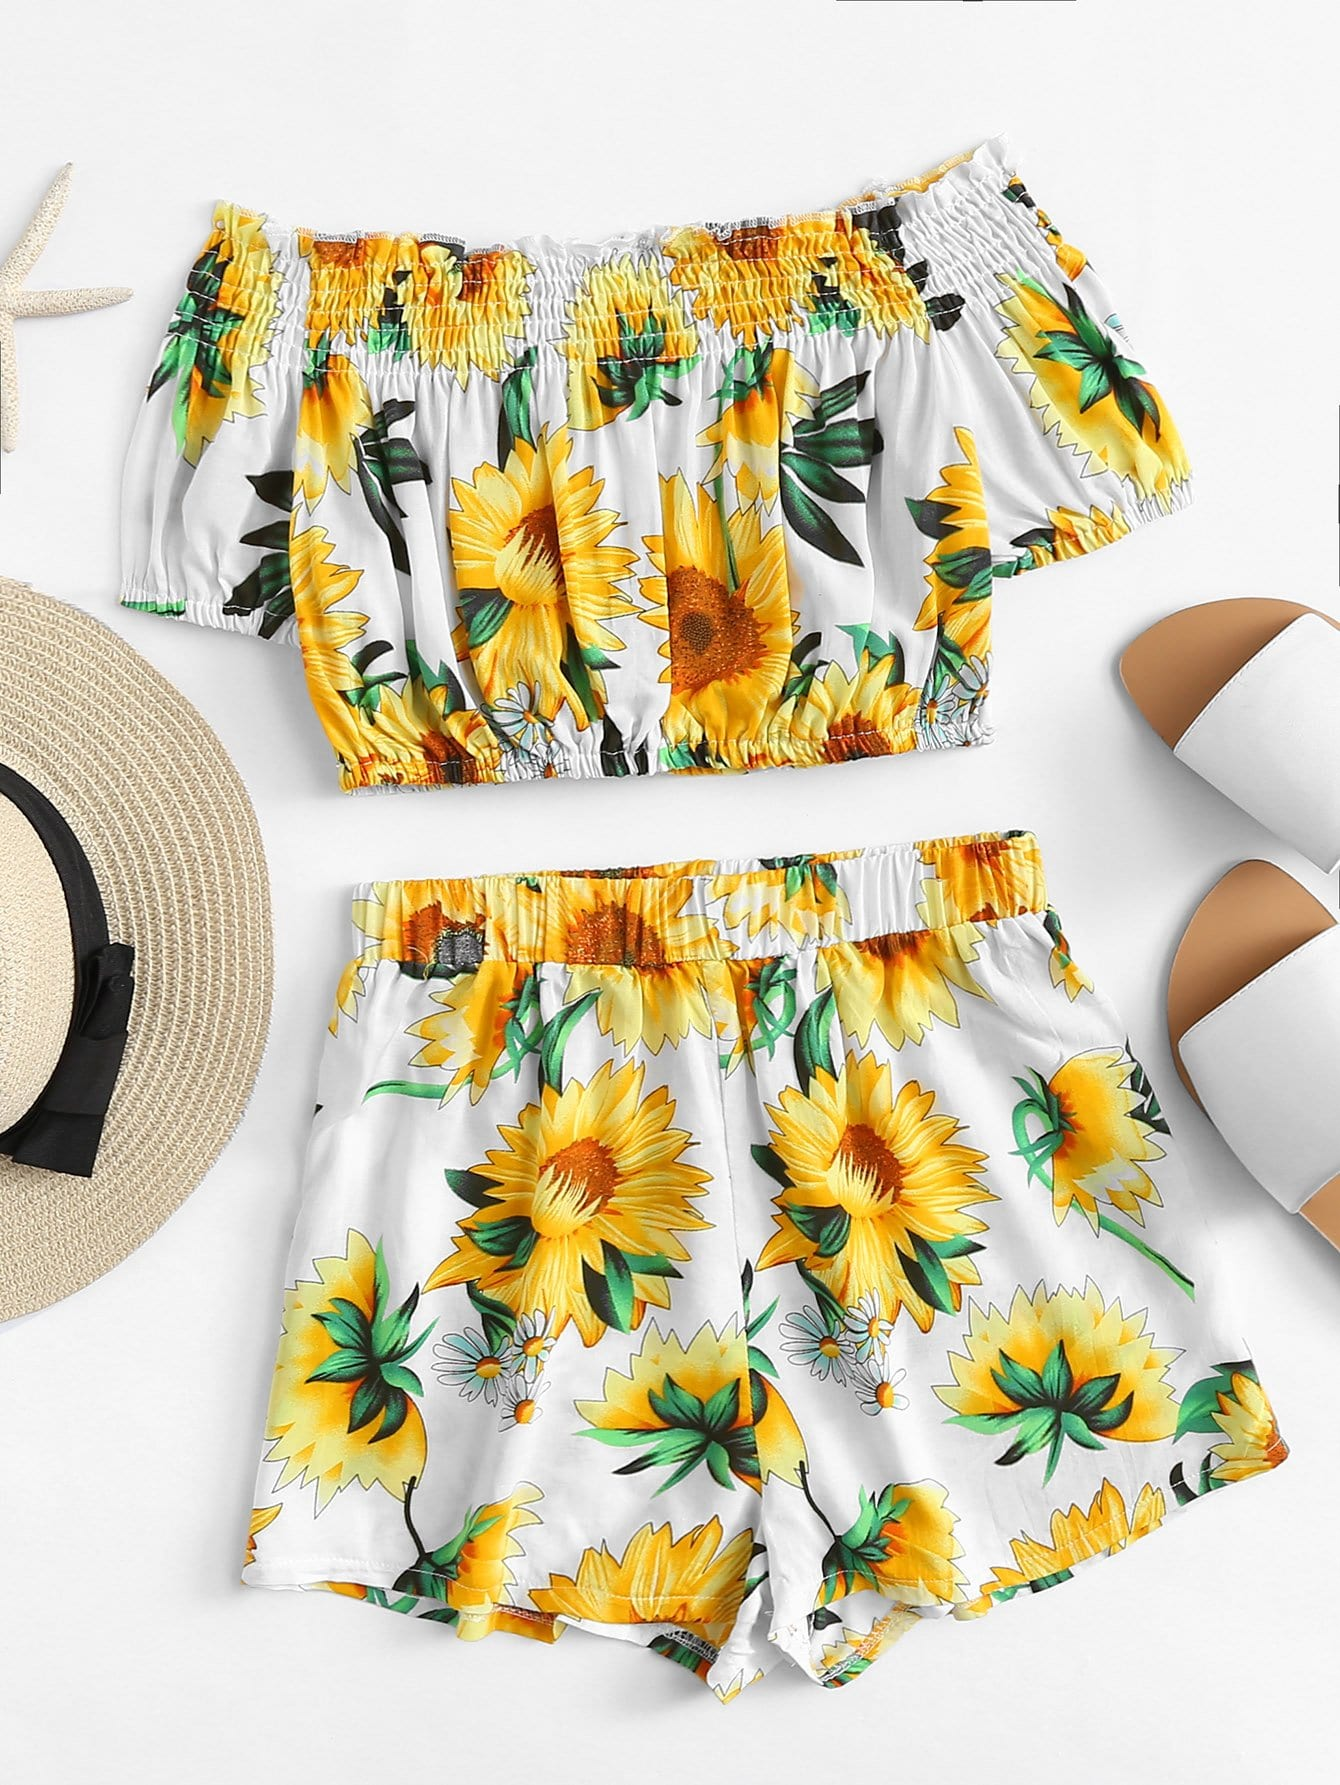 Off Shoulder Sunflower Print Top With Shorts bask simple v2